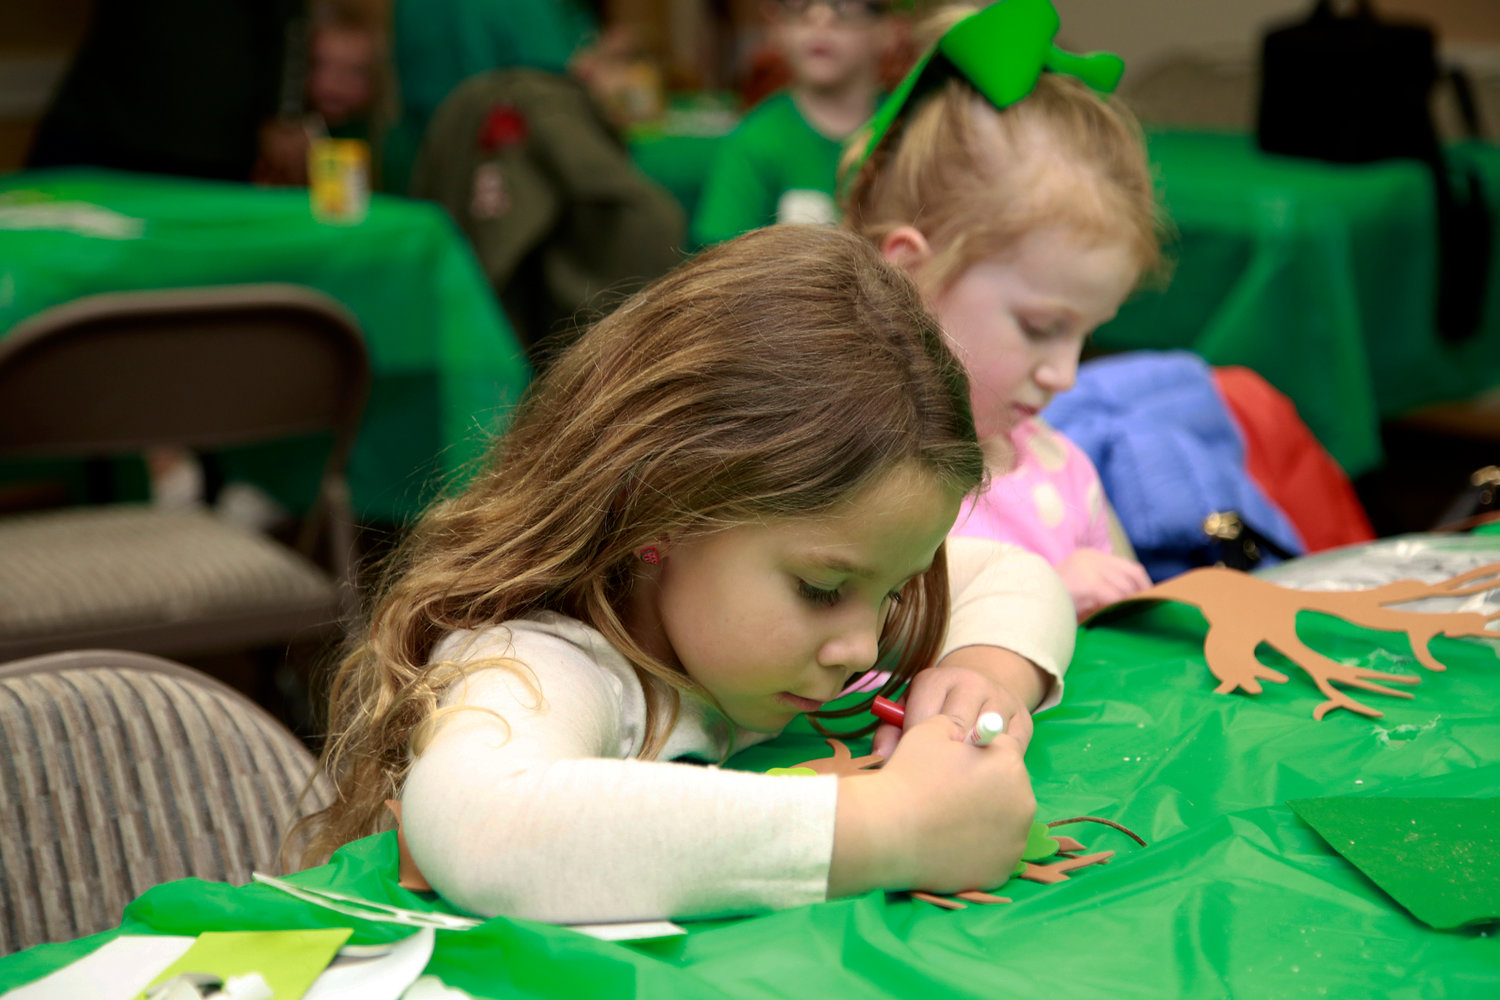 Audrey Touchard, 5, left, and Shannon Edwards, 4, worked on their crafts.